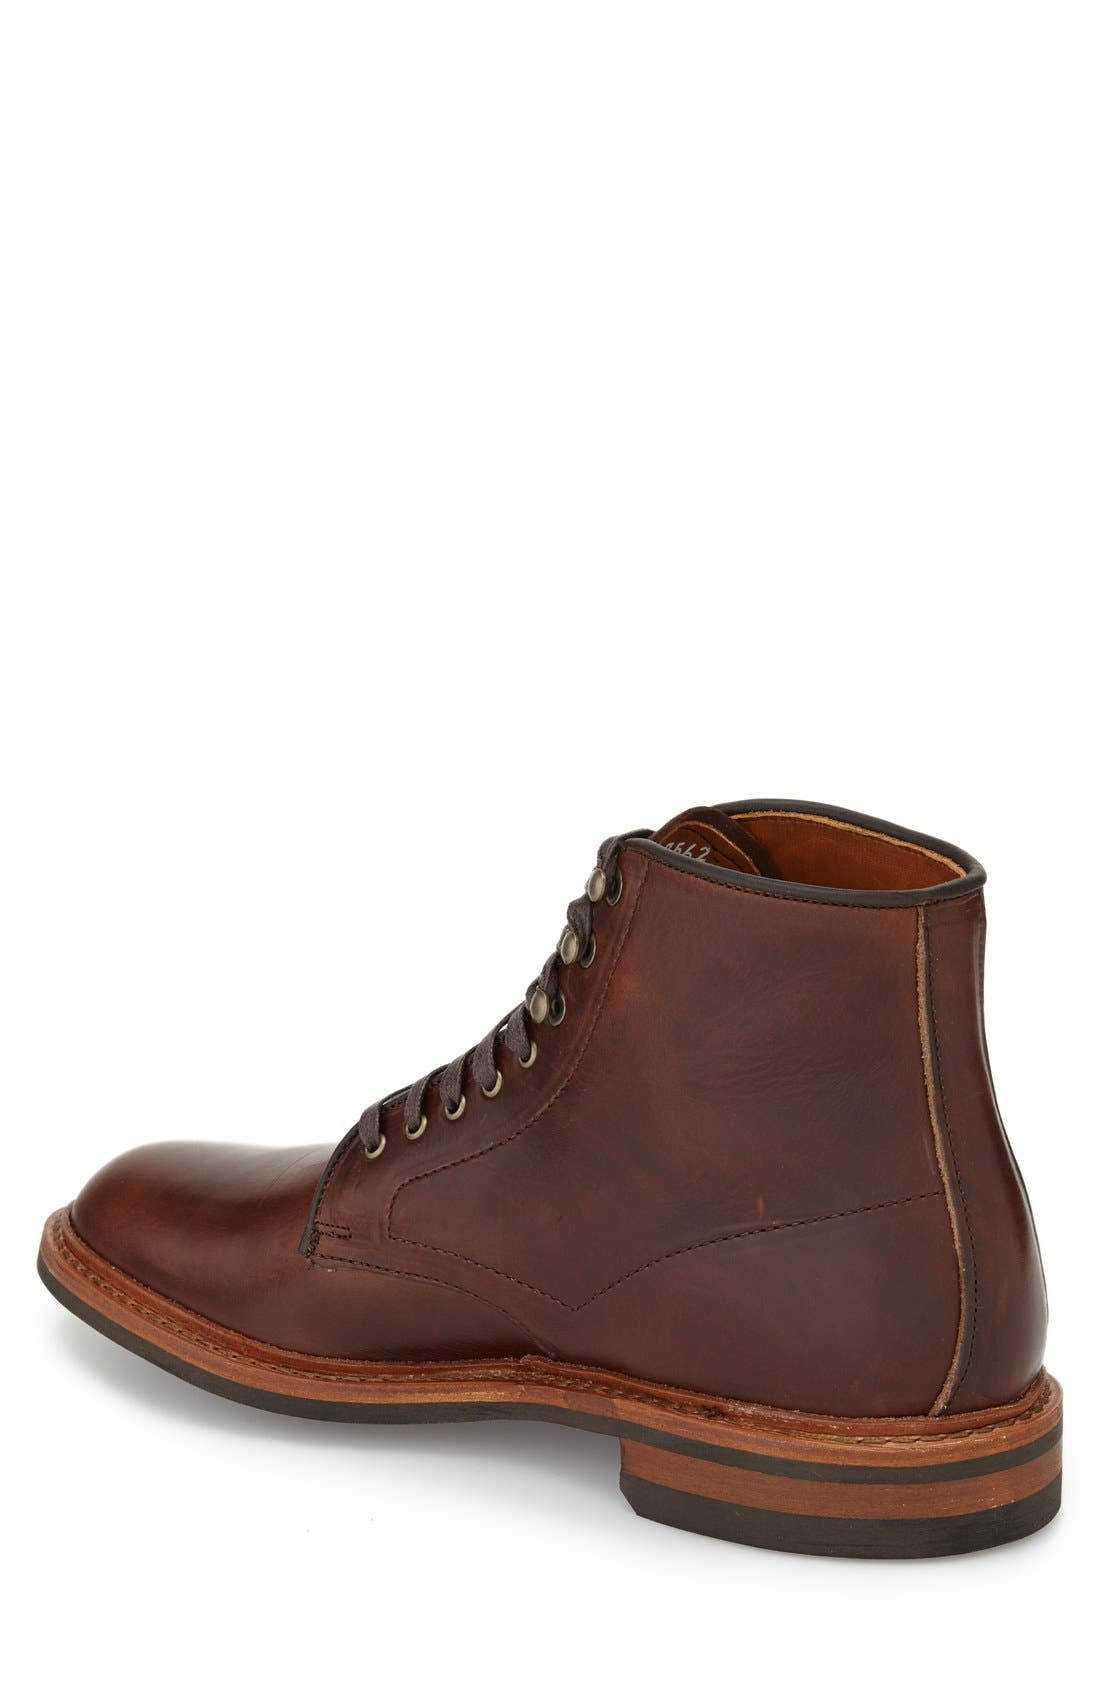 'Higgins Mill' Plain Toe Boot,                             Alternate thumbnail 2, color,                             BROWN LEATHER